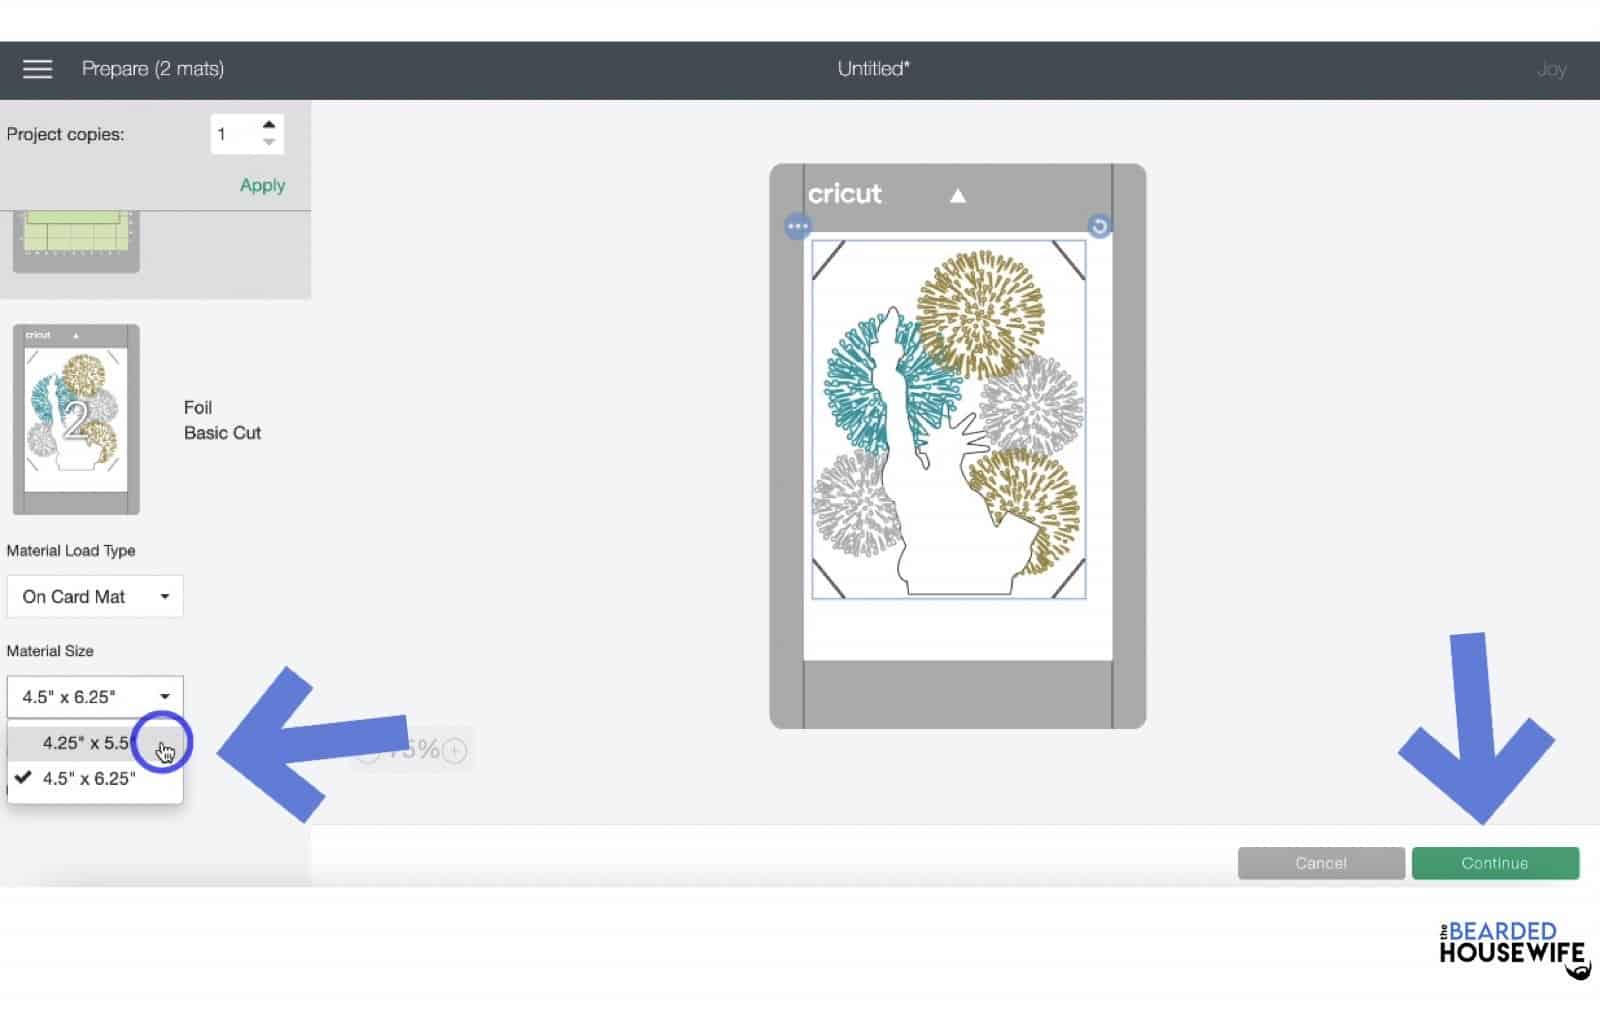 for the card layer, make sure to resize to the 4.25 x 5.5 size